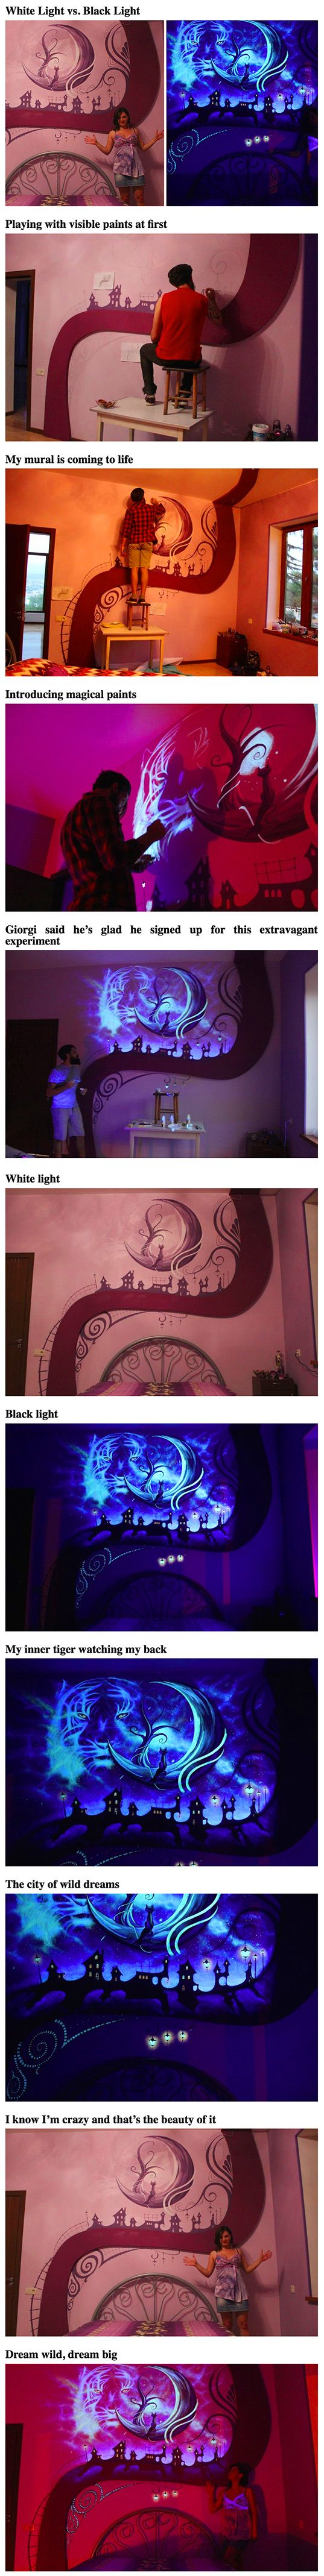 When the lights go out, this bedroom becomes a fairytale.